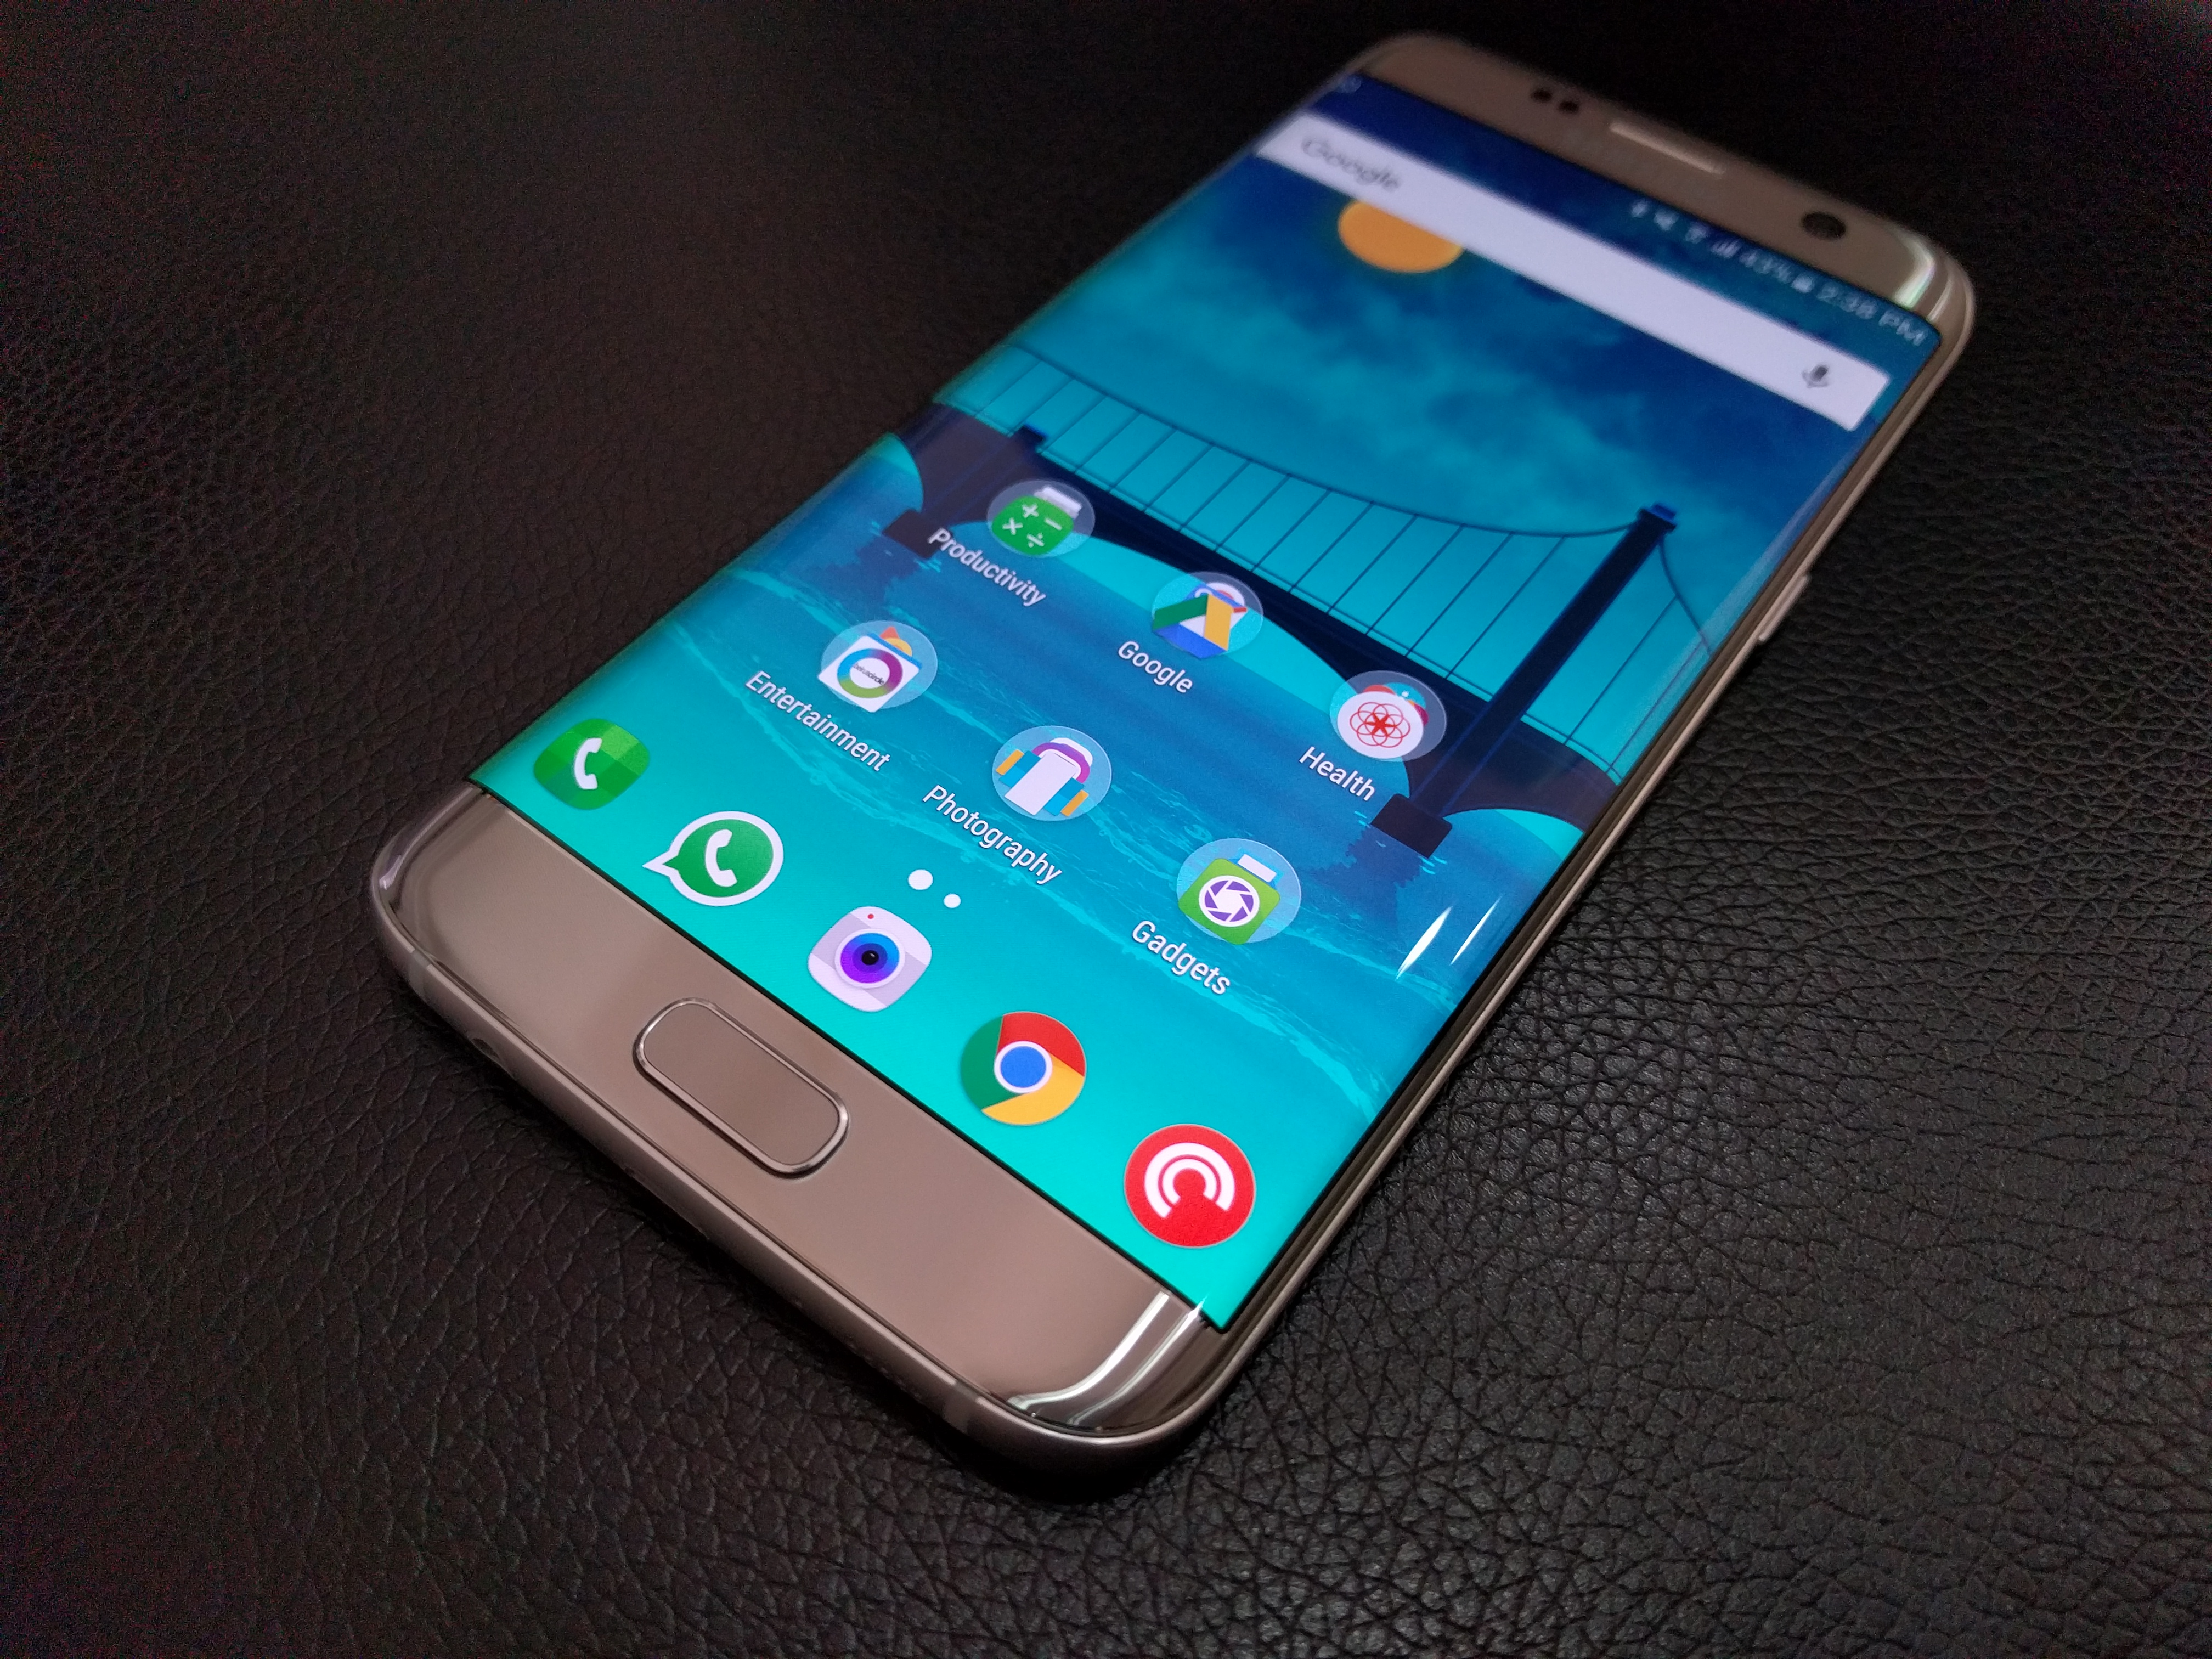 Samsung Galaxy S7 Edge Review, Take 2: Not Only Convincing, But